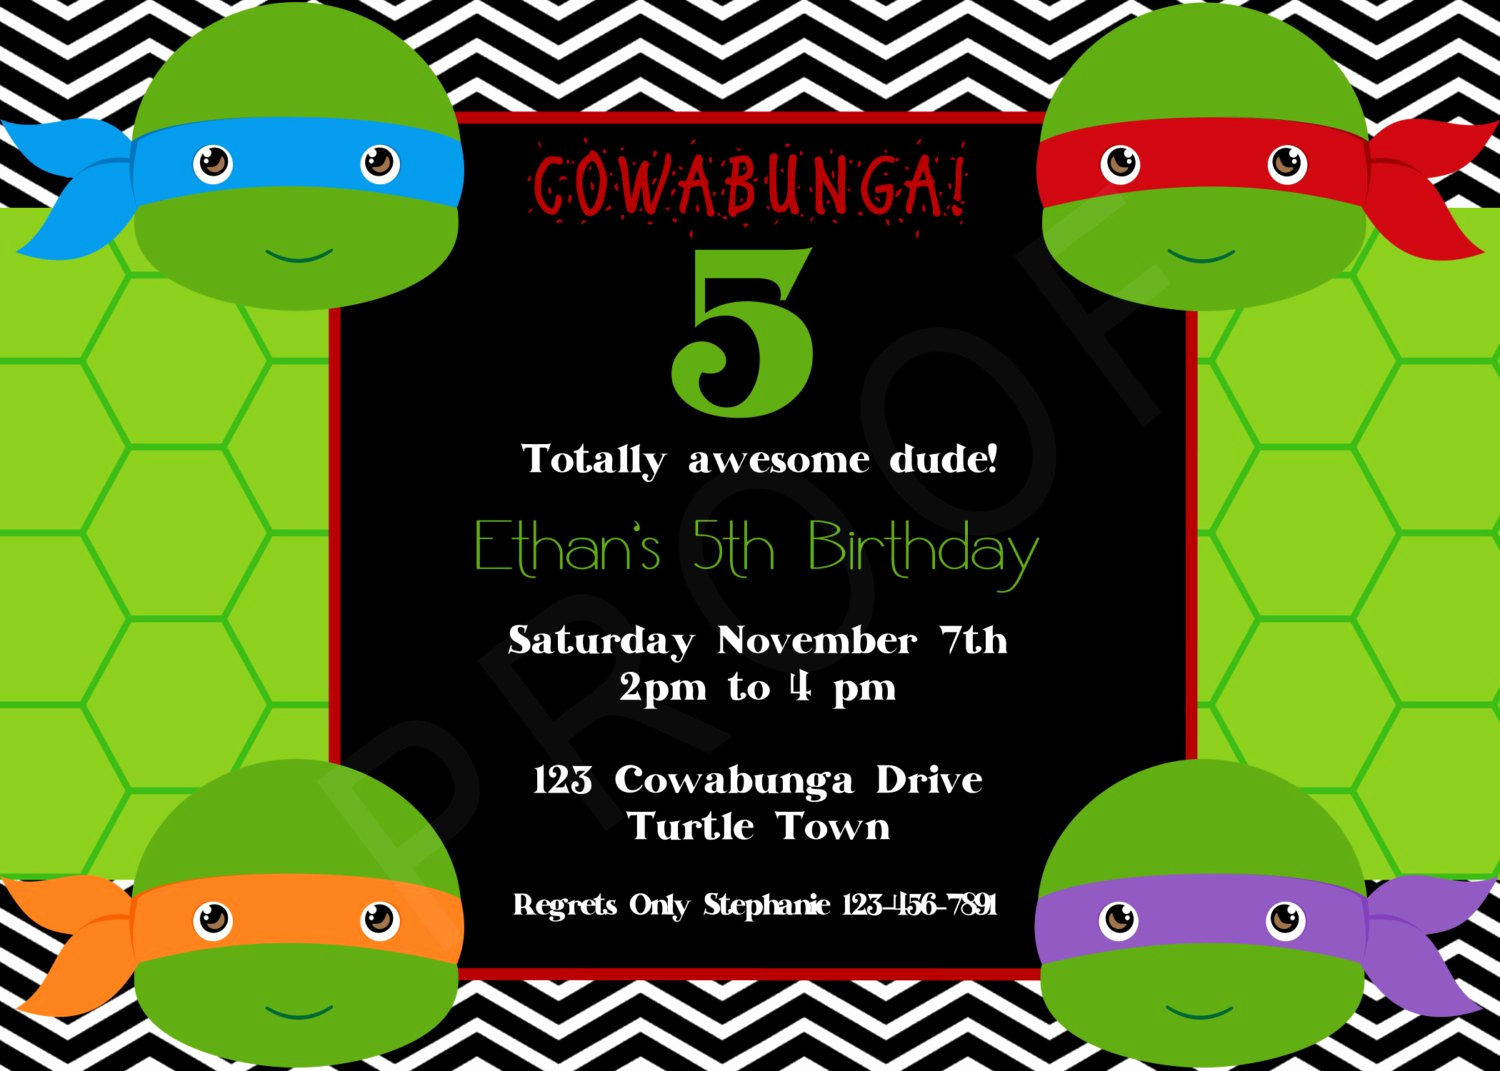 Ninja Turtle Birthday Invitation Template New Teenage Mutant Ninja Turtles Birthday Party Invitations Free